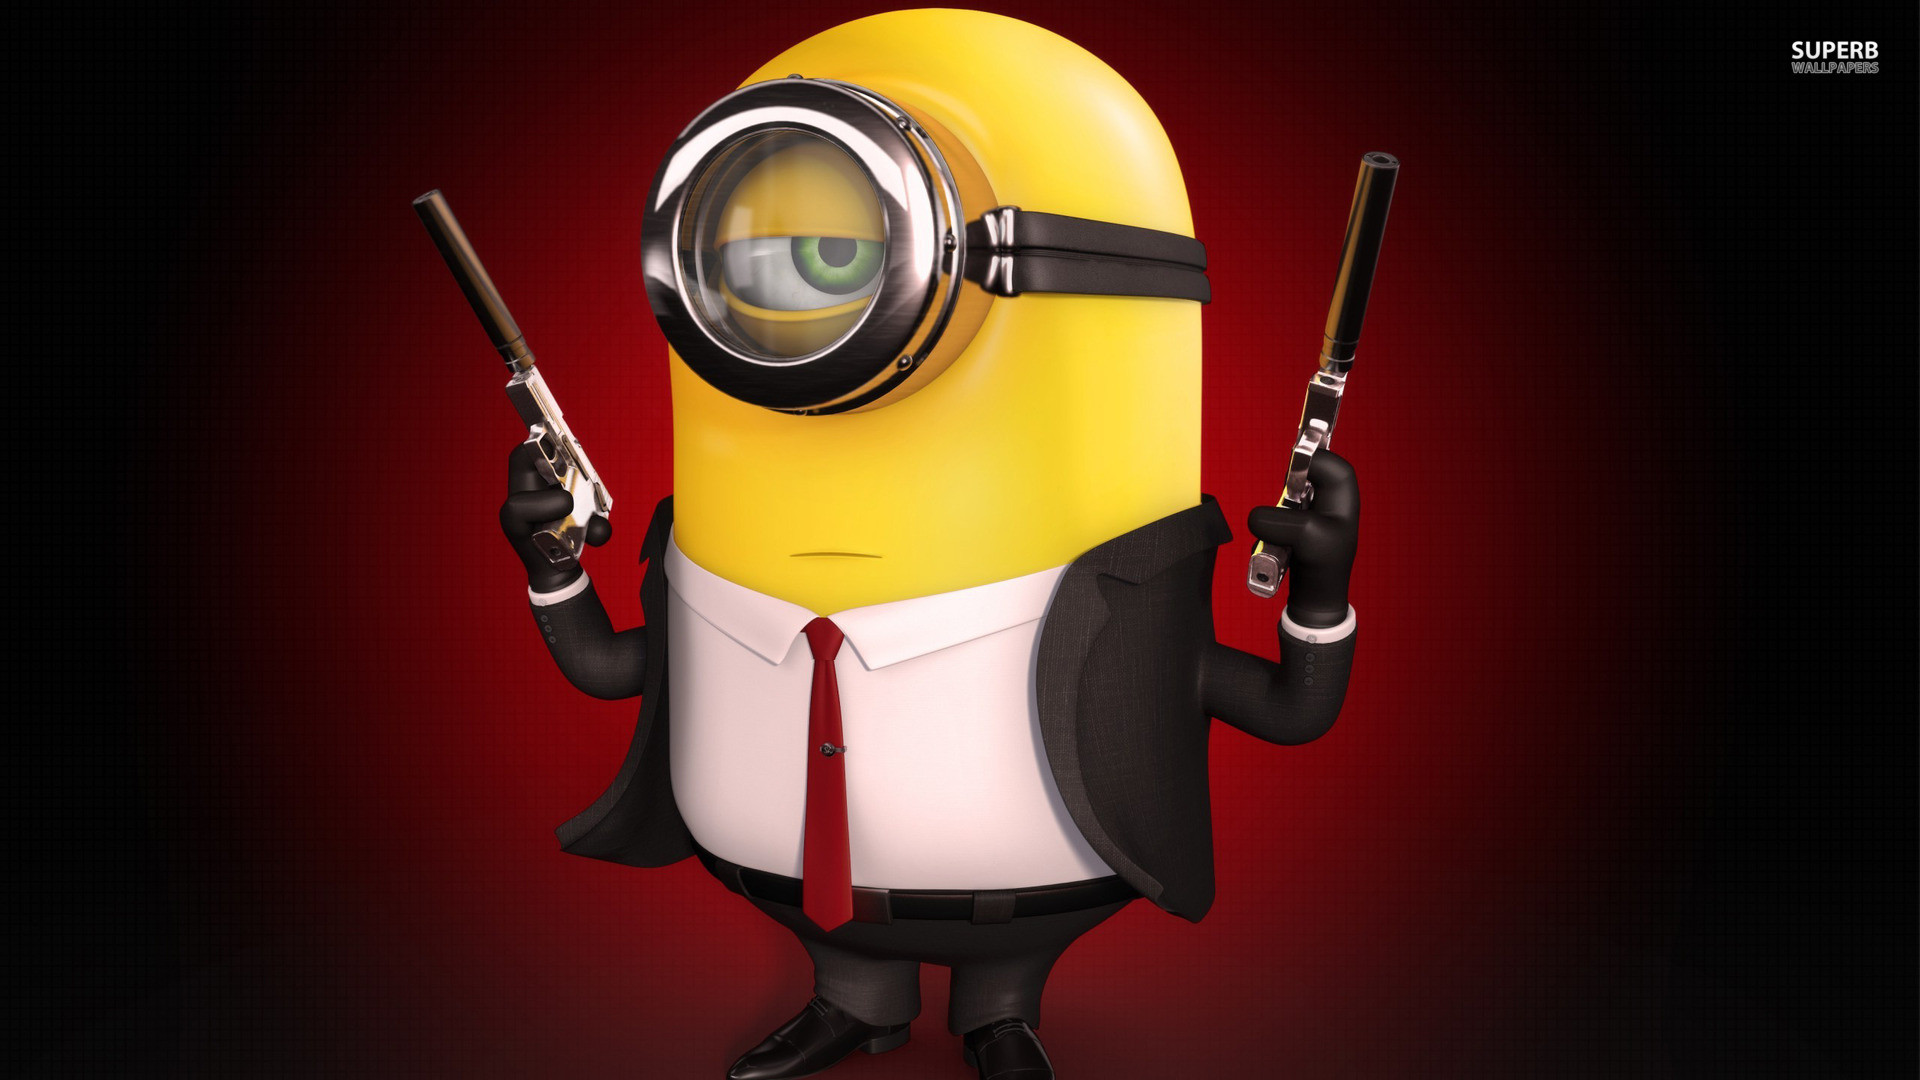 despicable me background (71+ images)